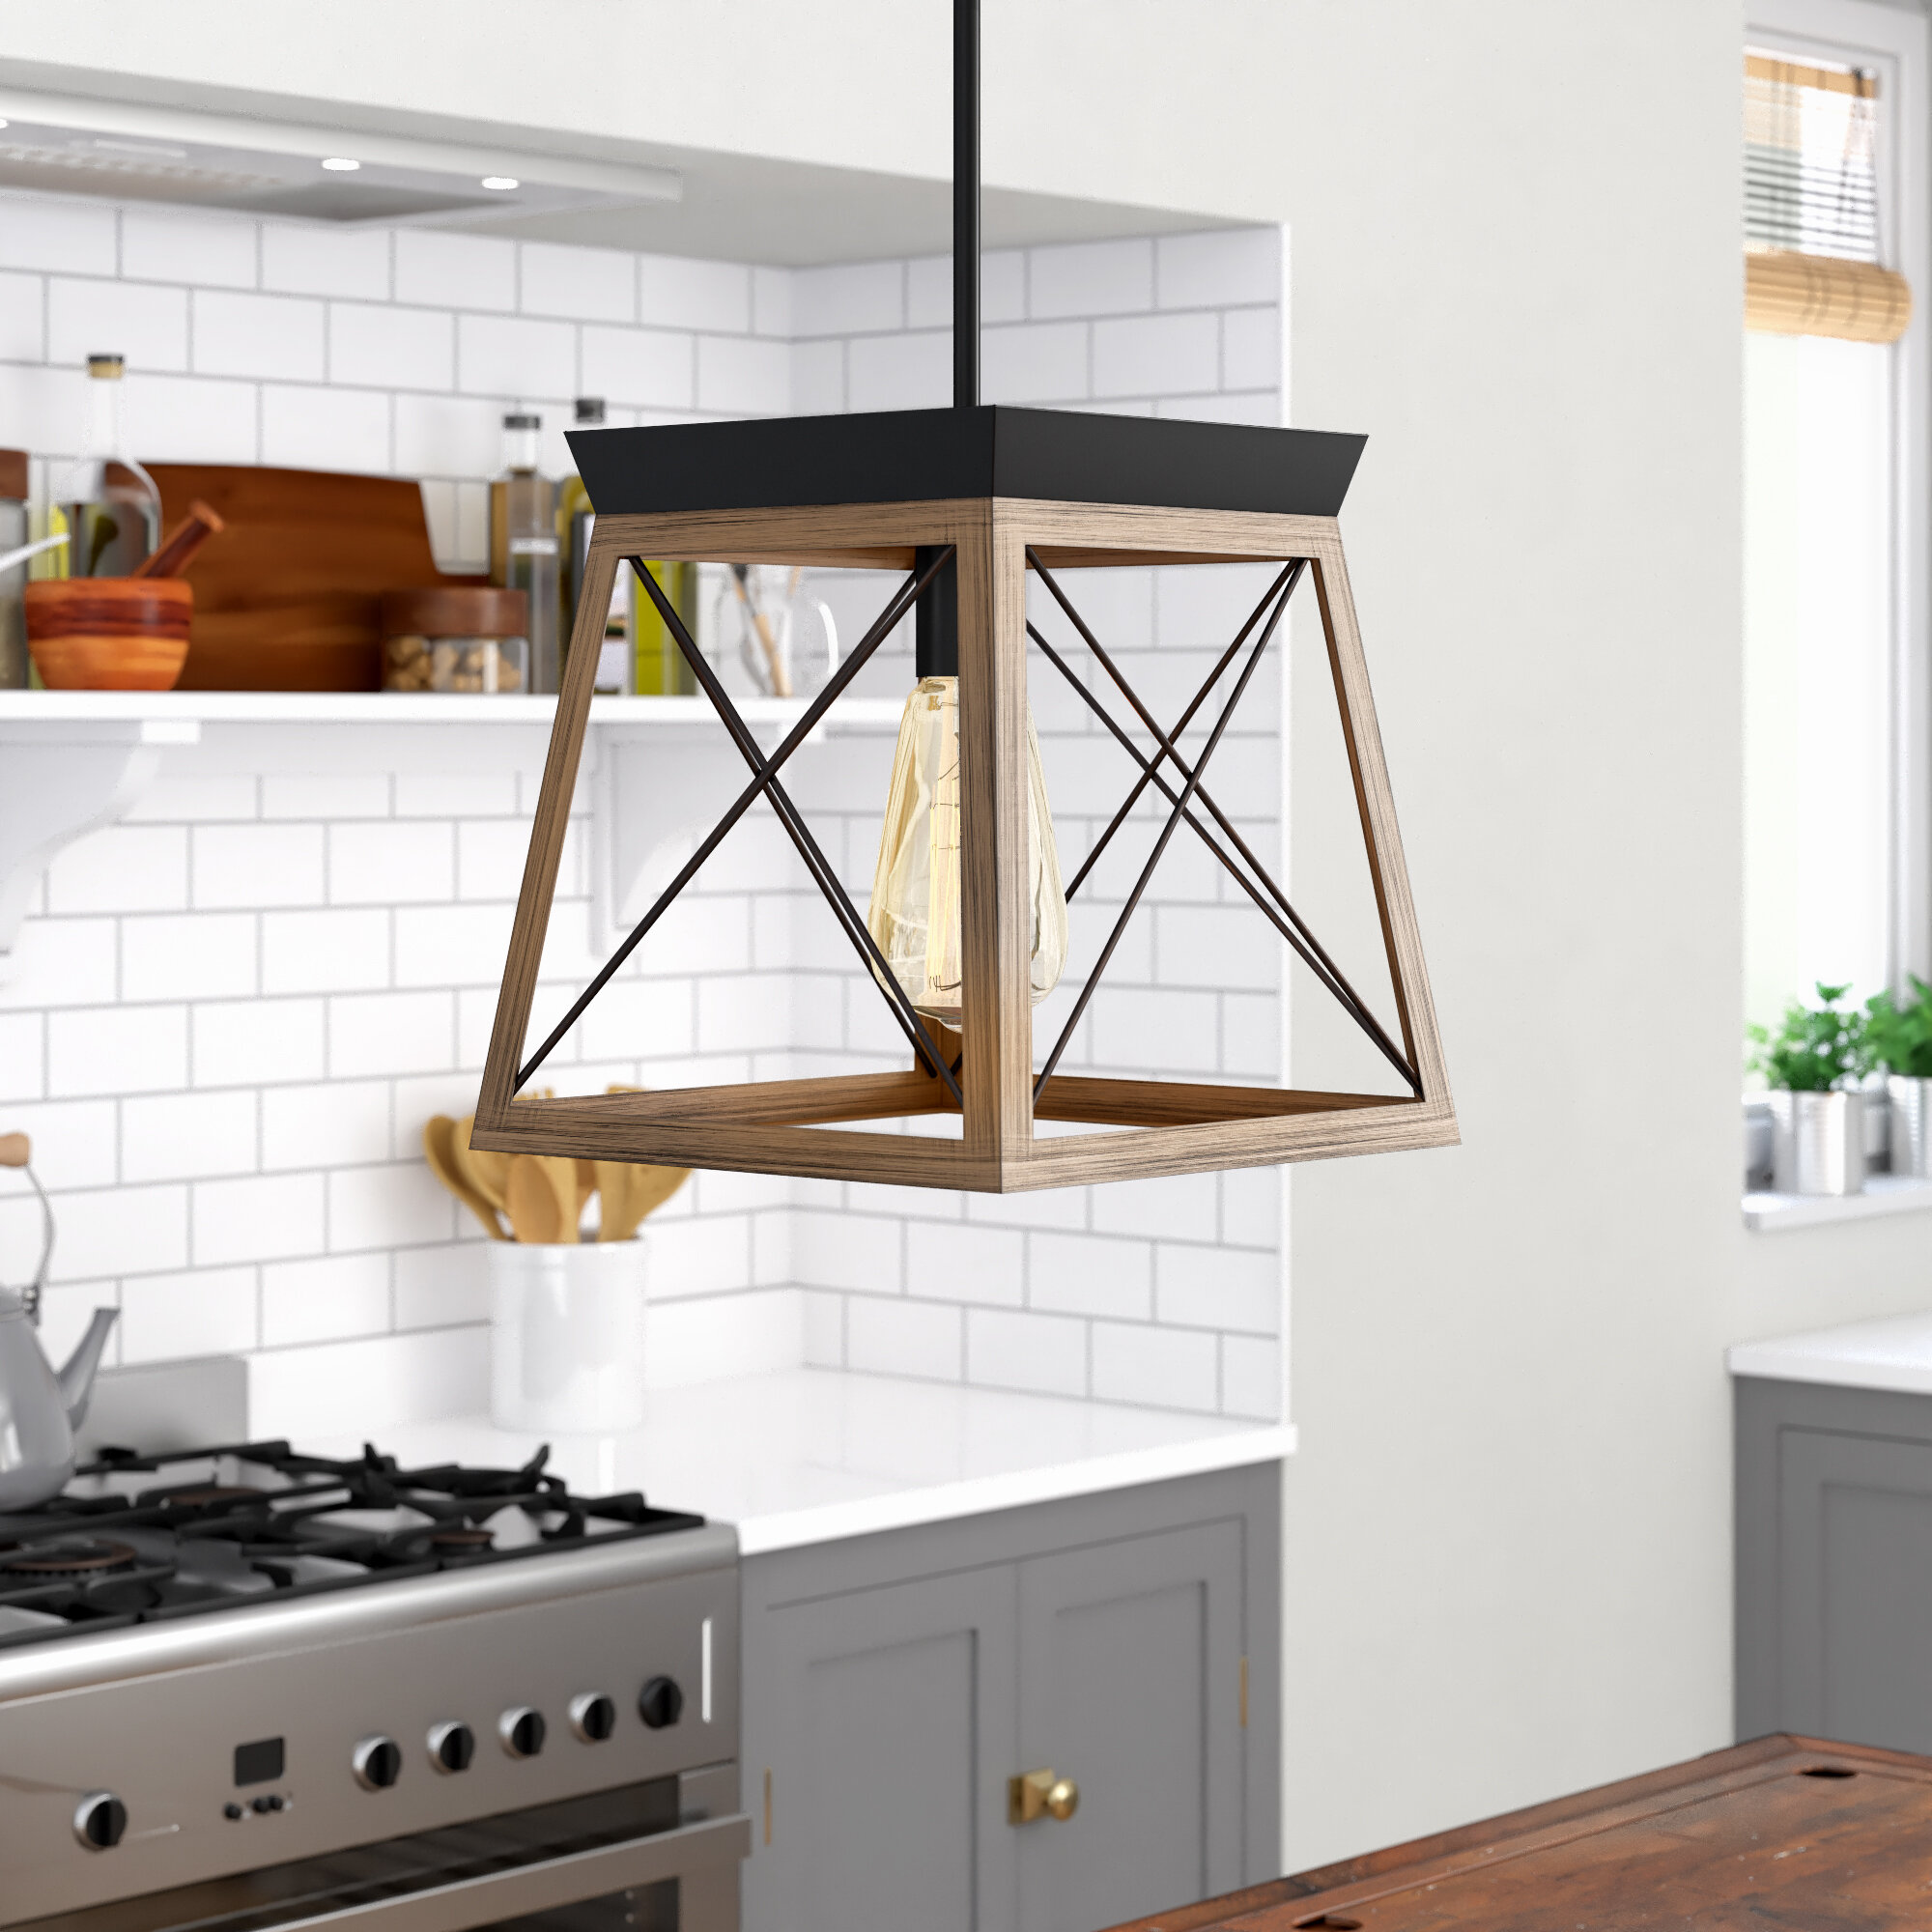 Rustic Pendant Lighting Free Shipping Over 35 Wayfair